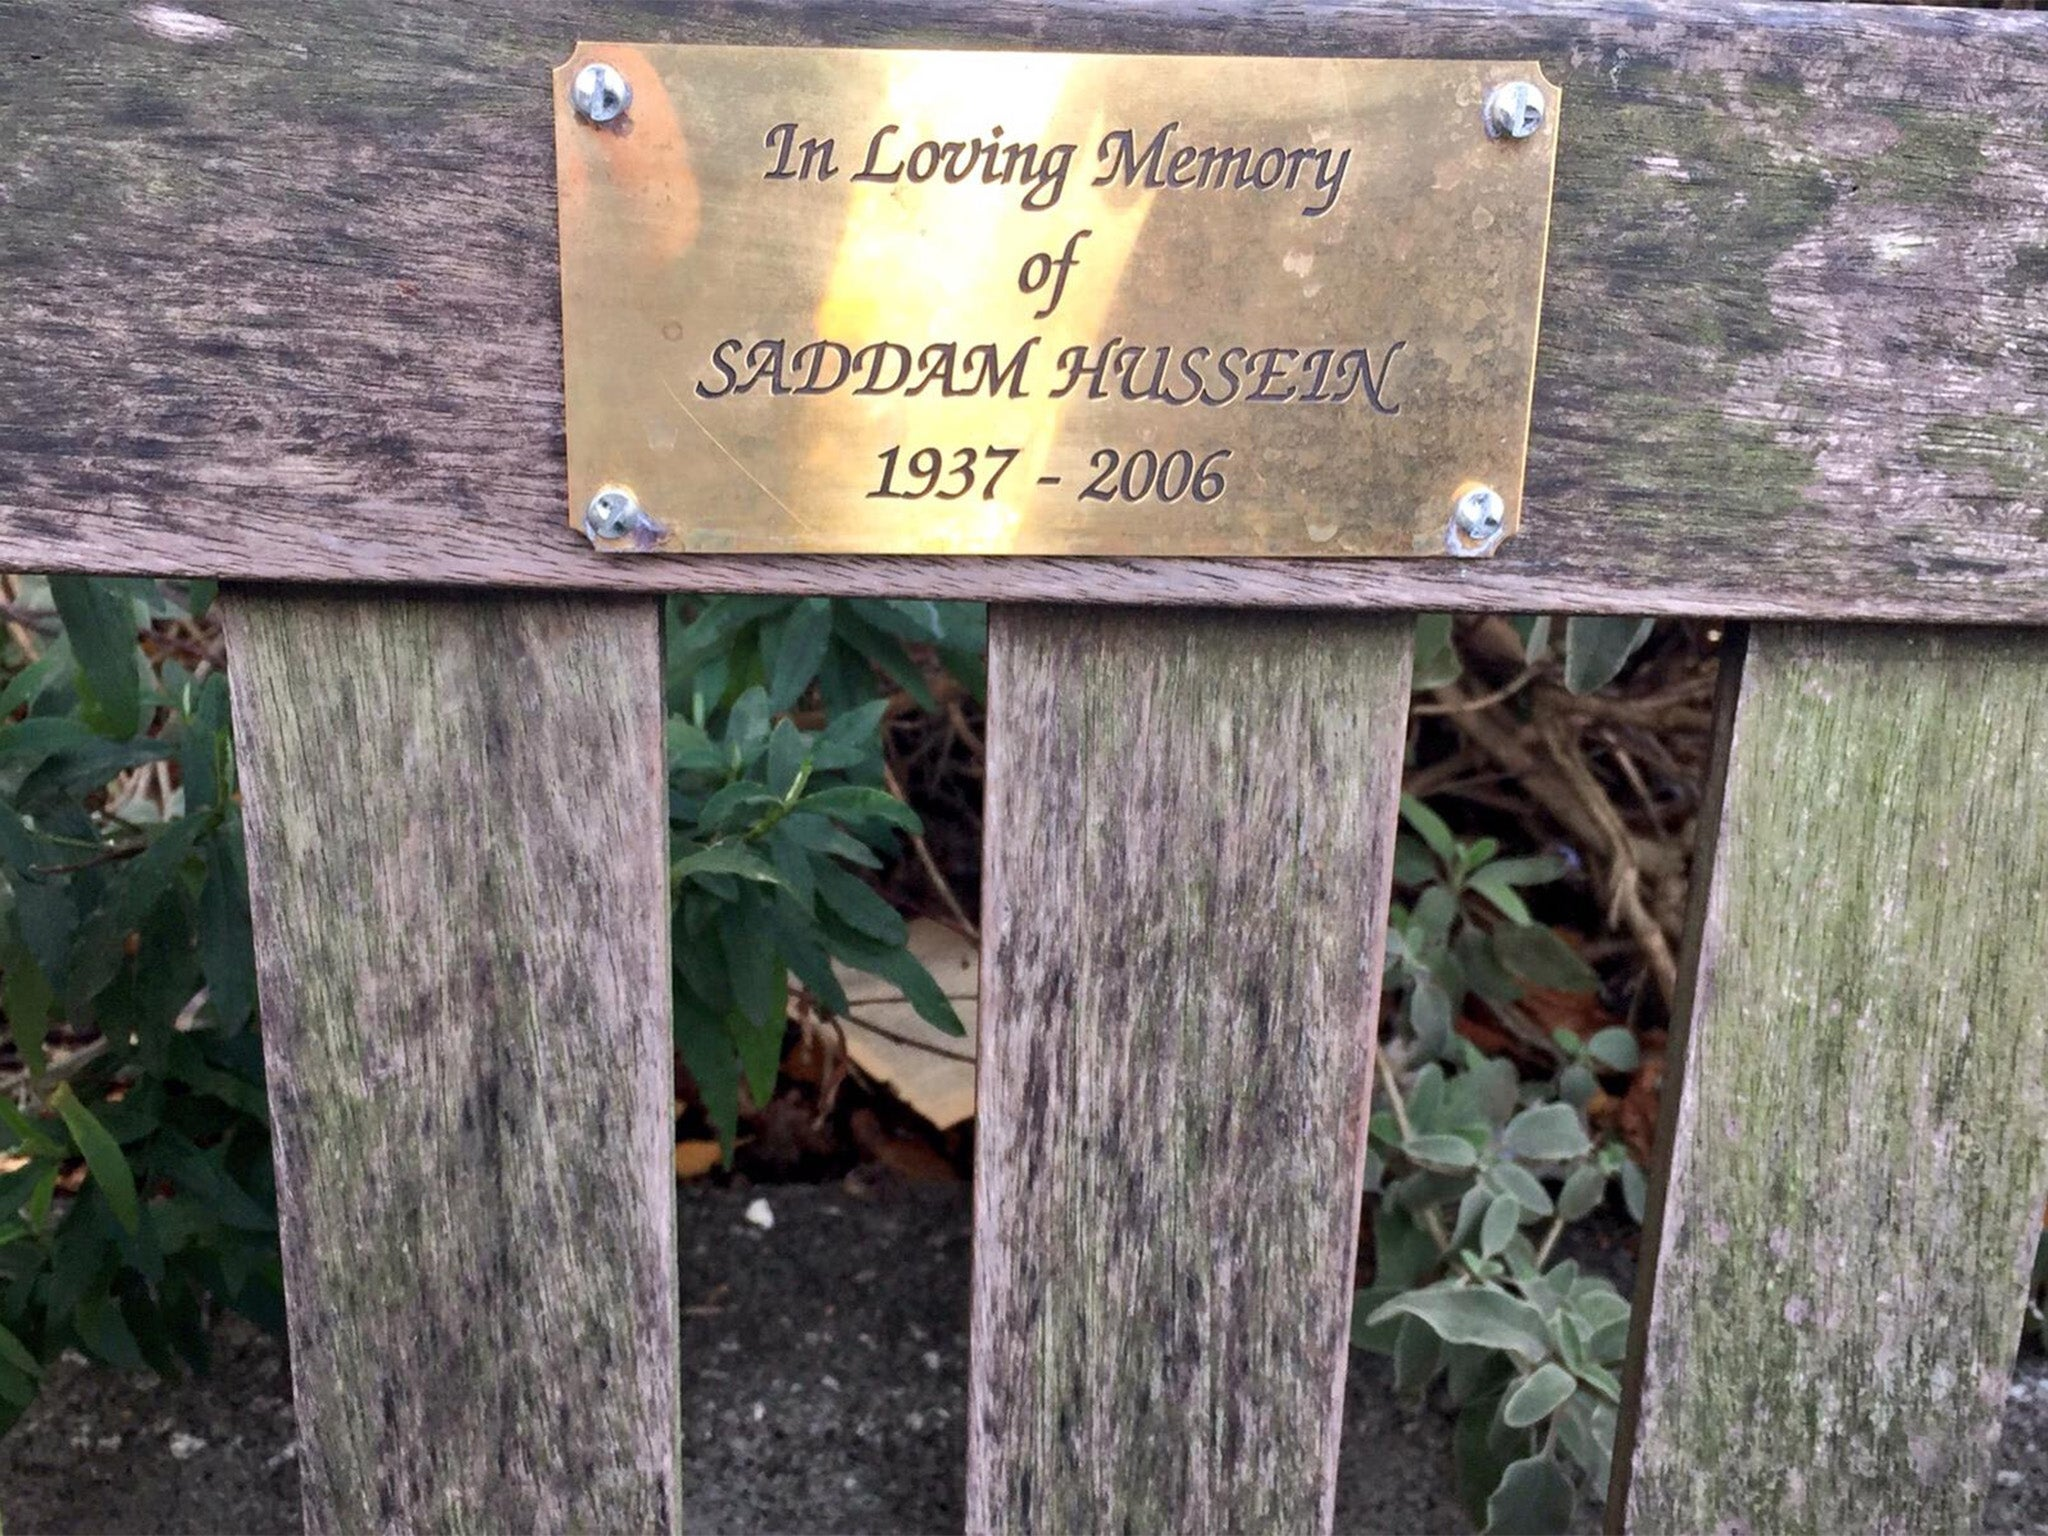 Saddam Hussein memorial plaque appears on bench in London town of Wanstead